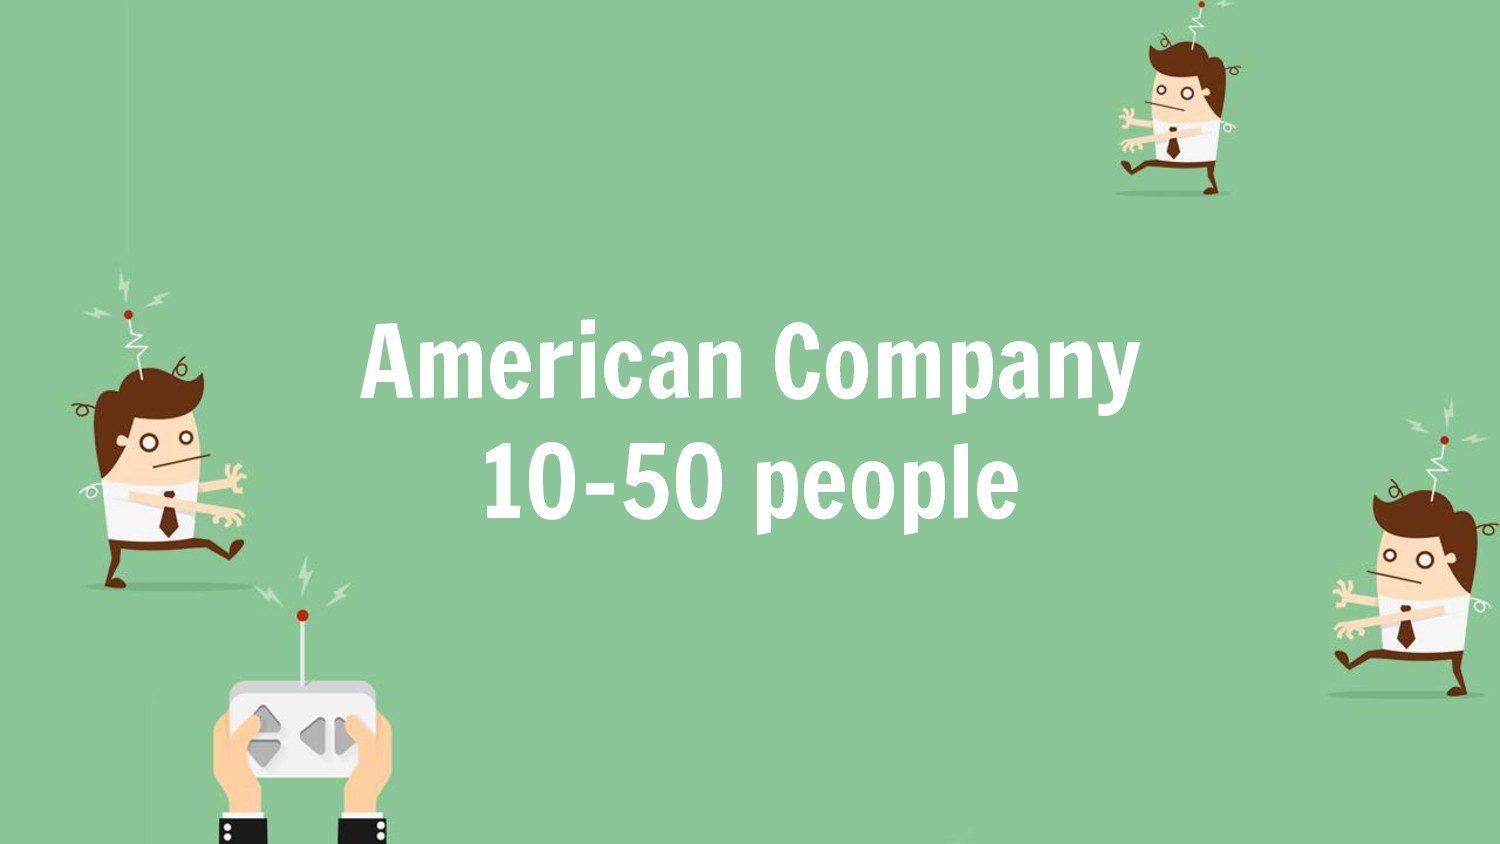 American Company 10-50 people